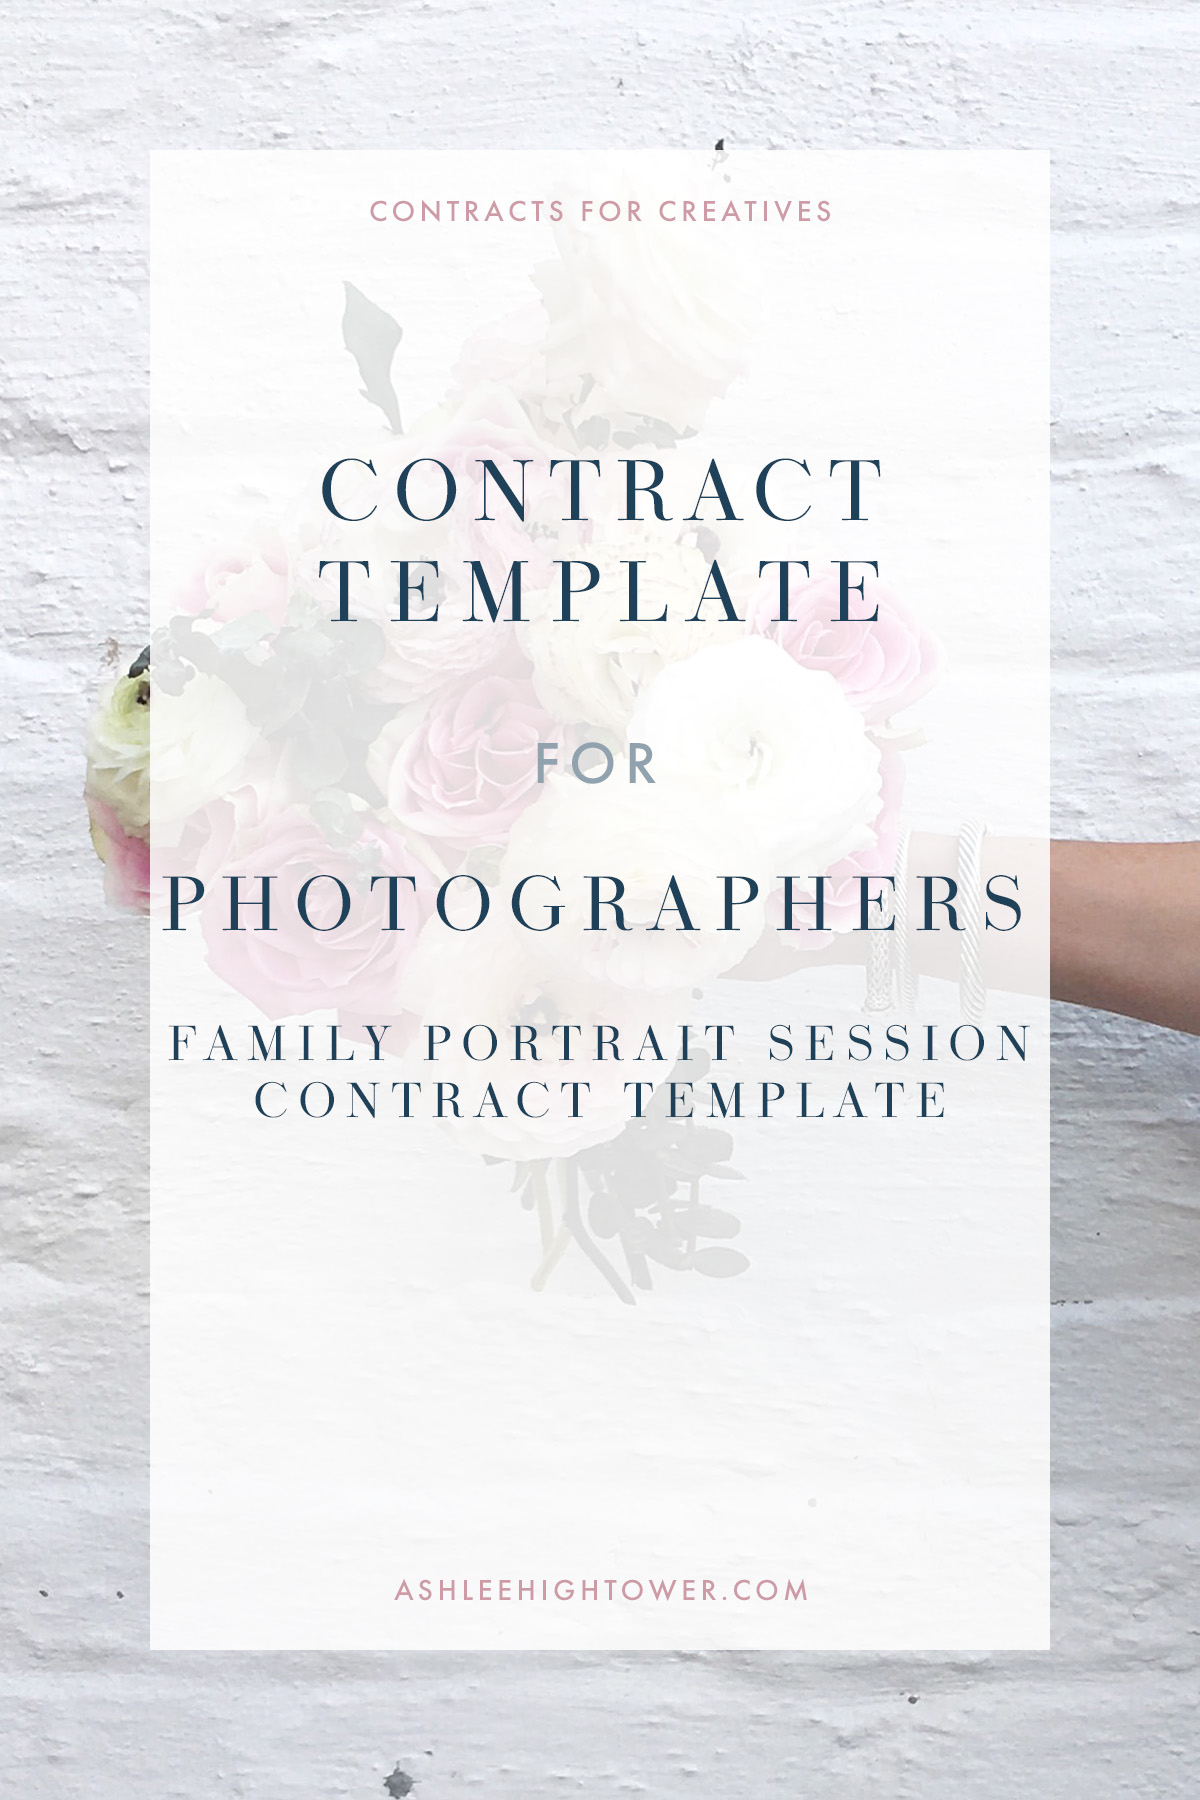 Family Portrait Session Contract | Contracts for Creatives | Ashlee Hightower